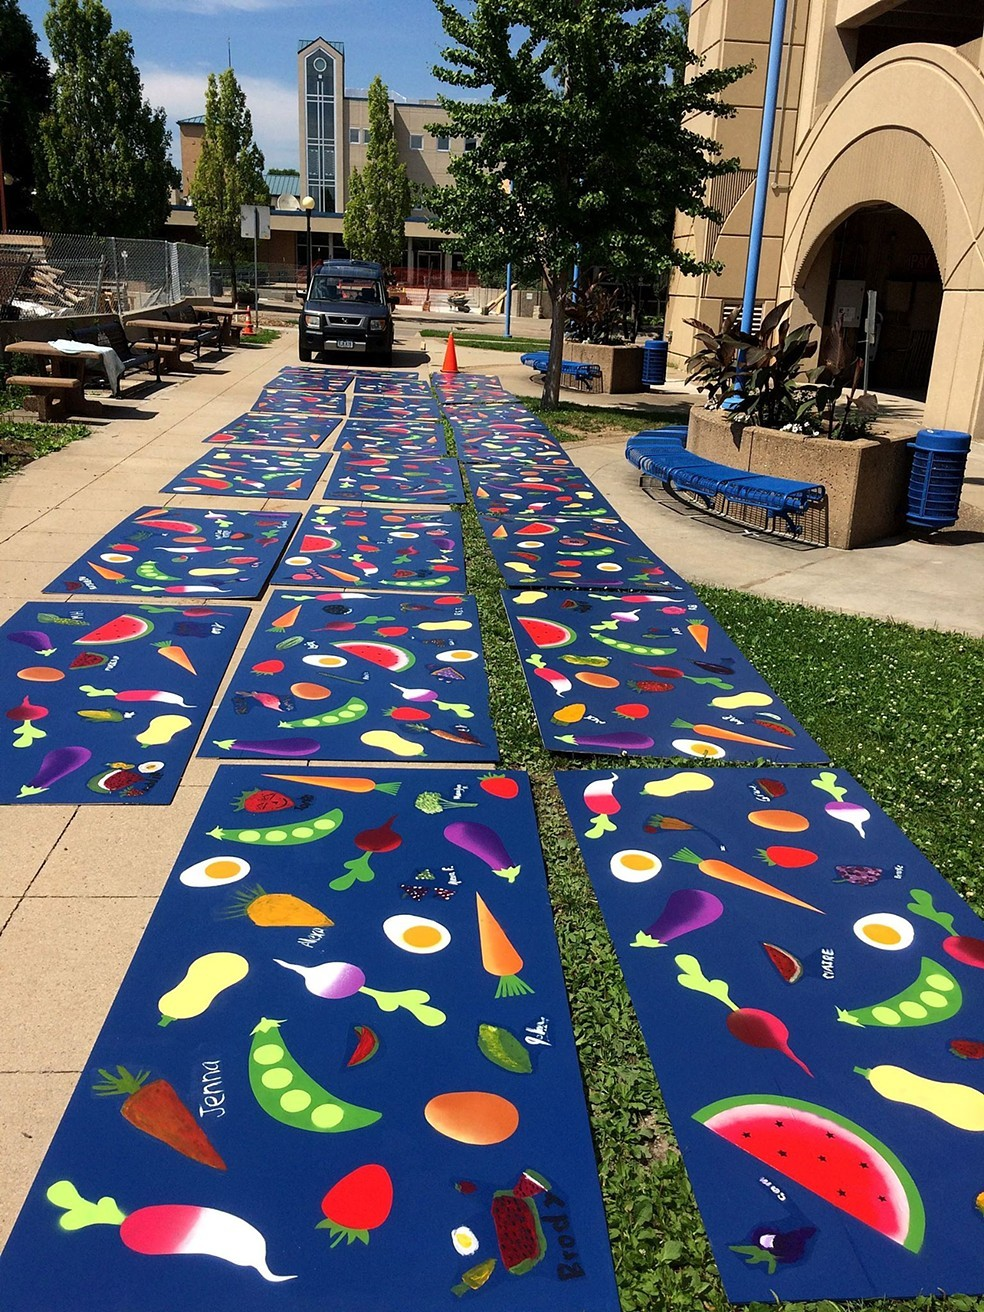 Community mural project for the Iowa City Farmers' Market. This piece included a few hundred participants whose paintings were later laminated to the surface as part of the piece. The rest of the work was stenciled around those paintings in the studio. 175' x 4' completed over the course of 3 weeks in June of 2017.